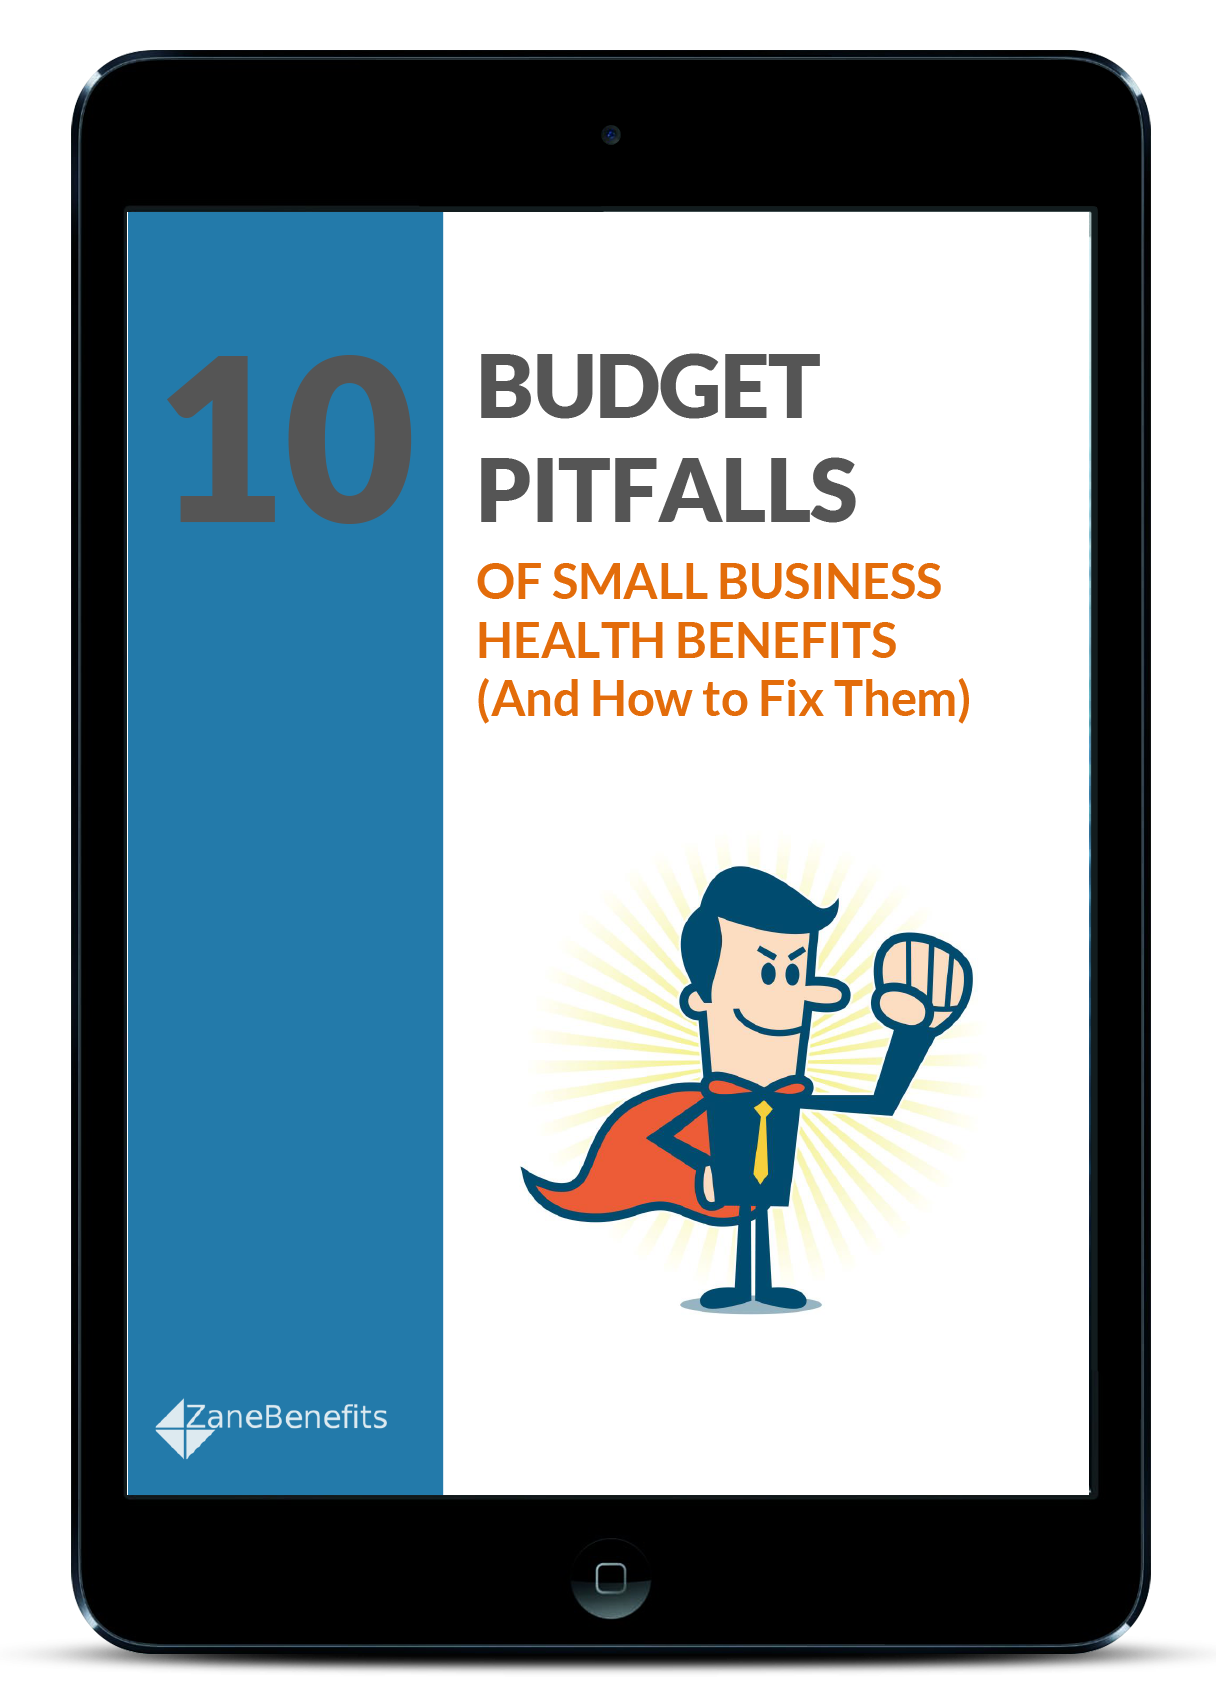 10 Budget Pitfalls of Small Business Health Benefits